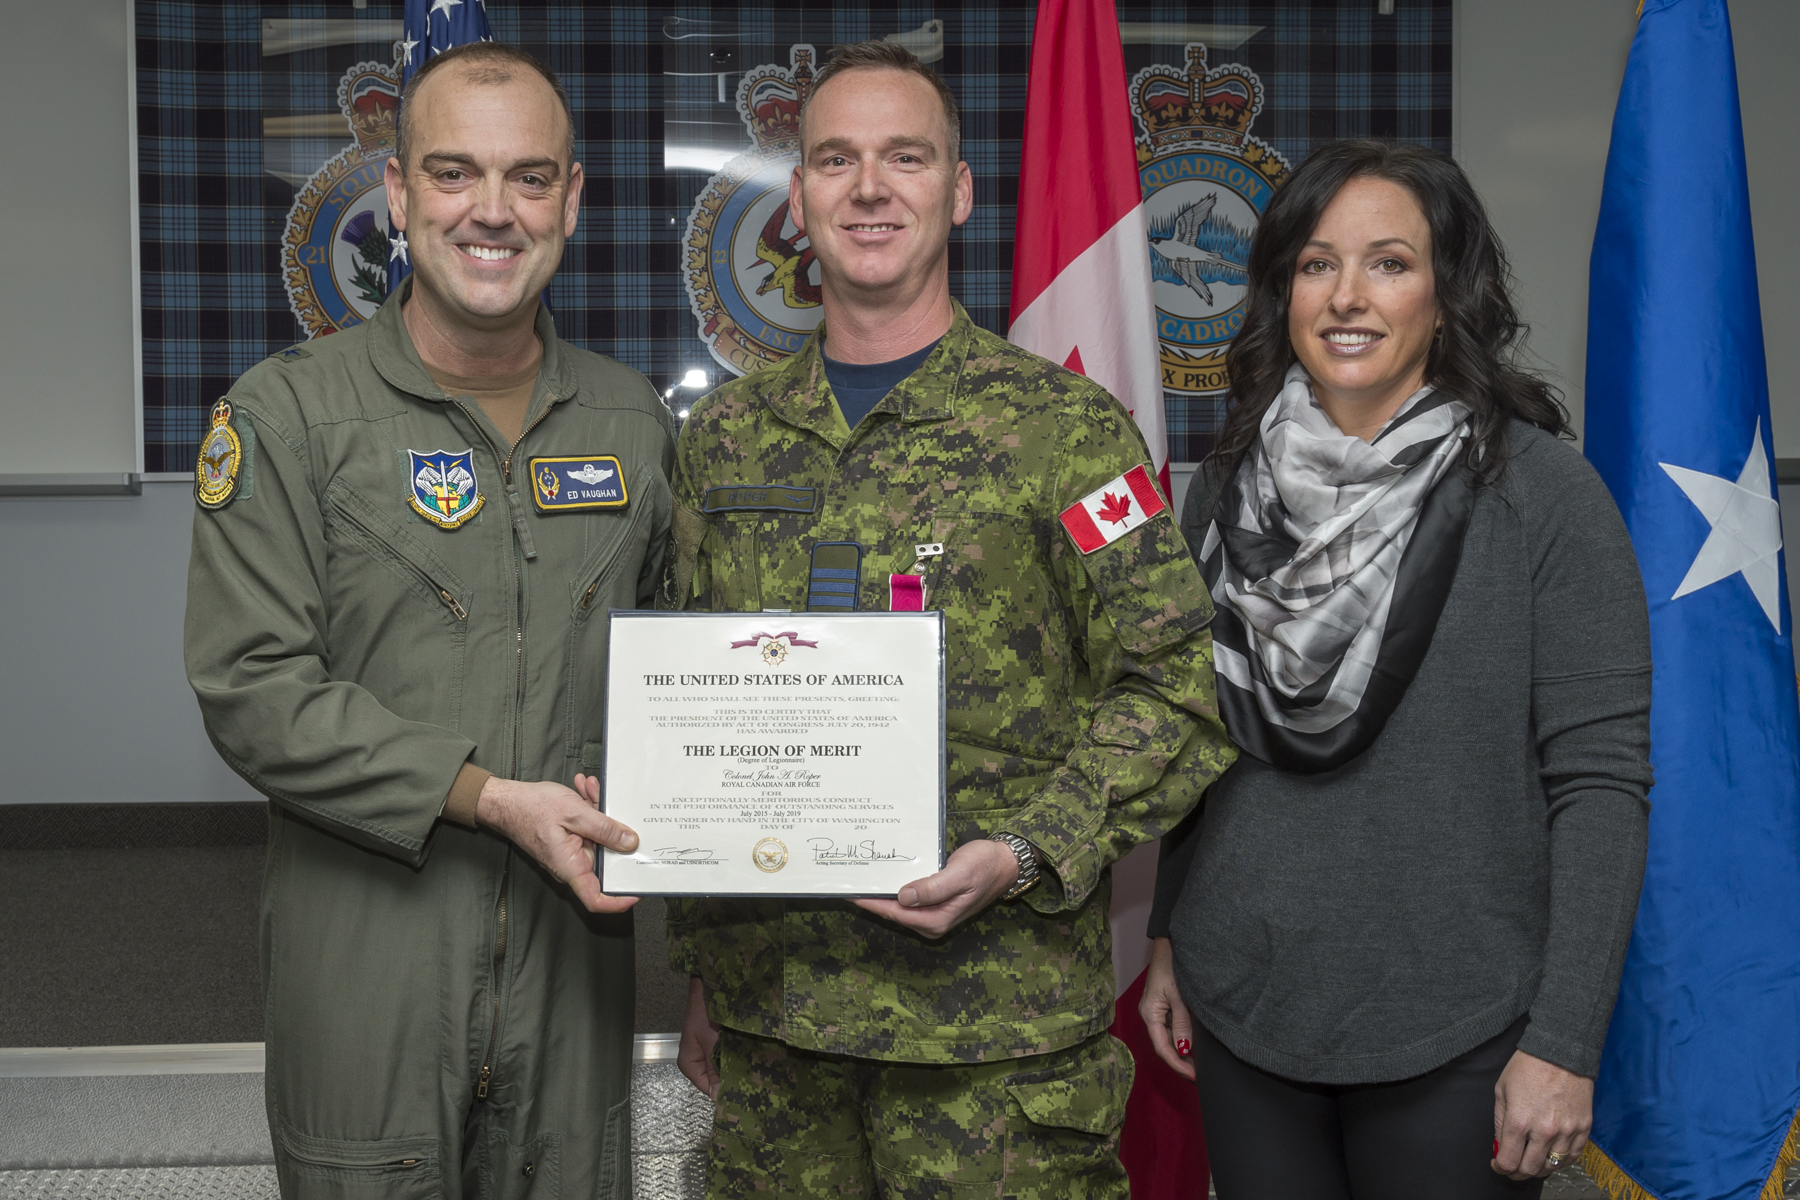 A photo of two men holding a certificate, one wearing a green flight suit and the other a military camouflage uniform, and a woman dressed in civilian clothes.